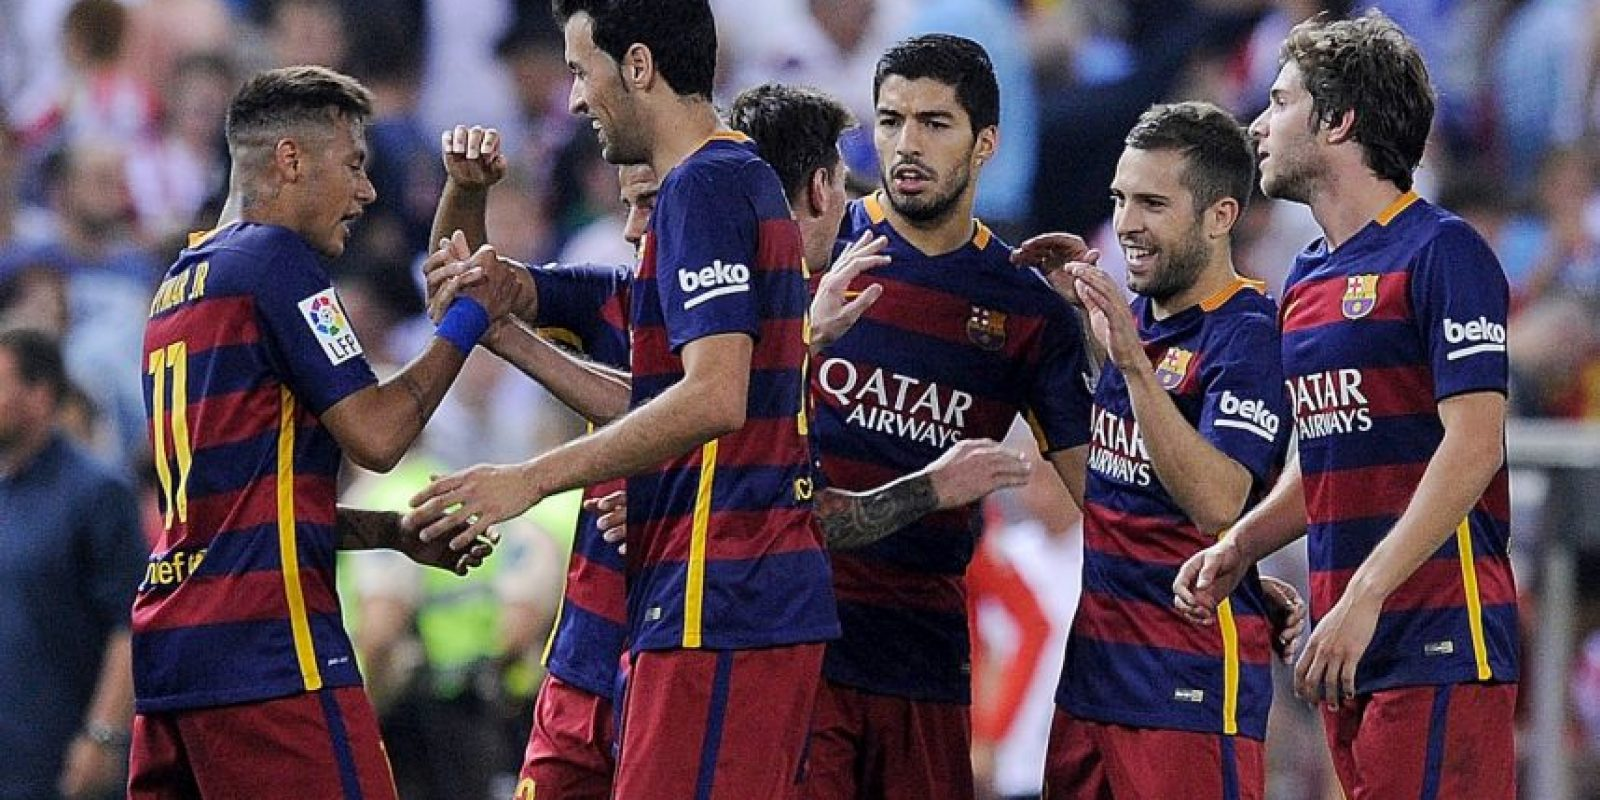 Los culés son favoritos Foto: Getty Images